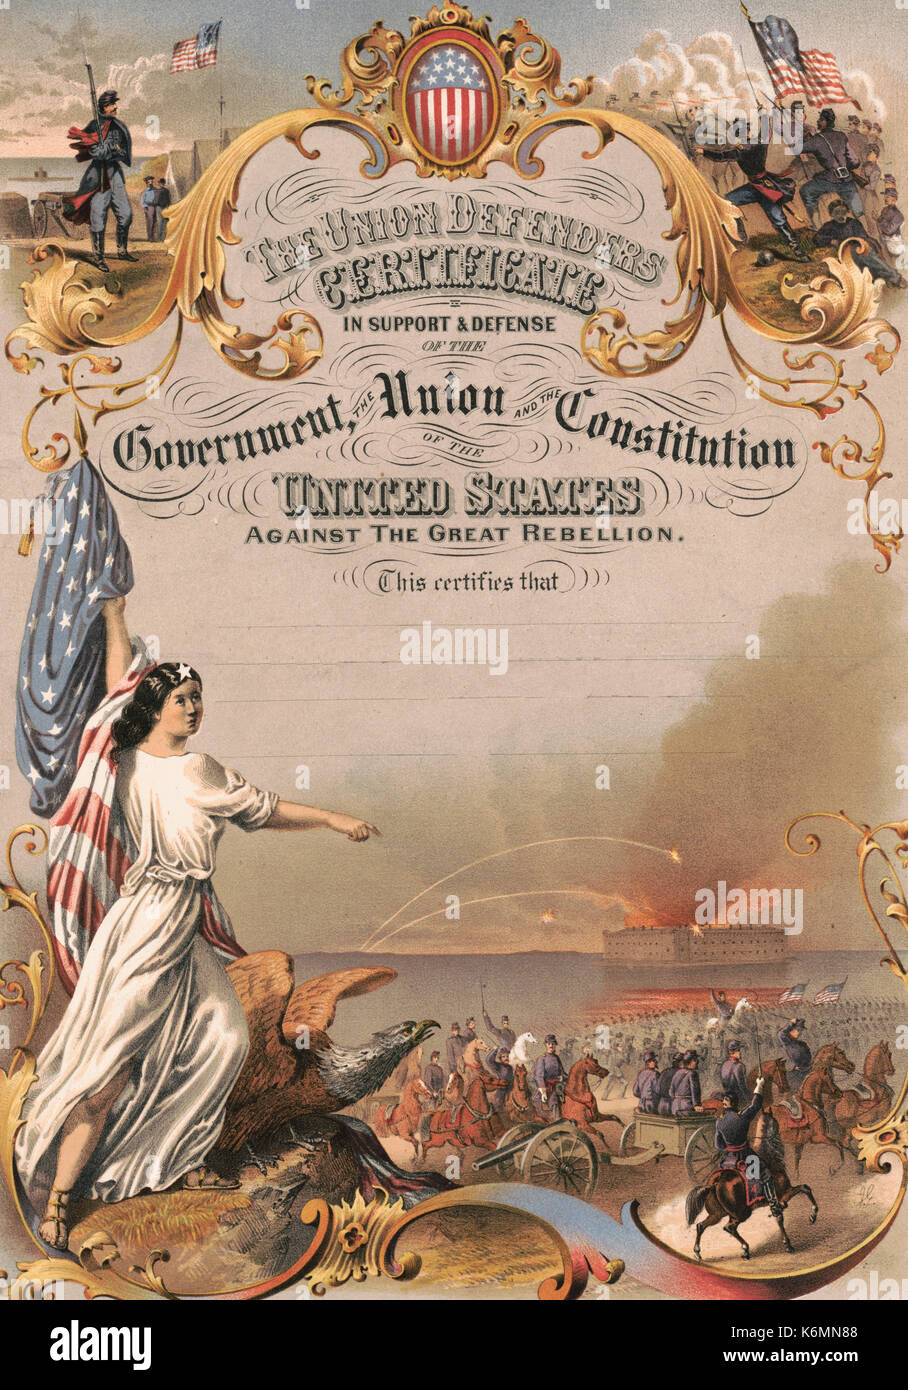 The Union defenders certificate in support & defense of the government, the Union and the Constitution of the - Stock Image